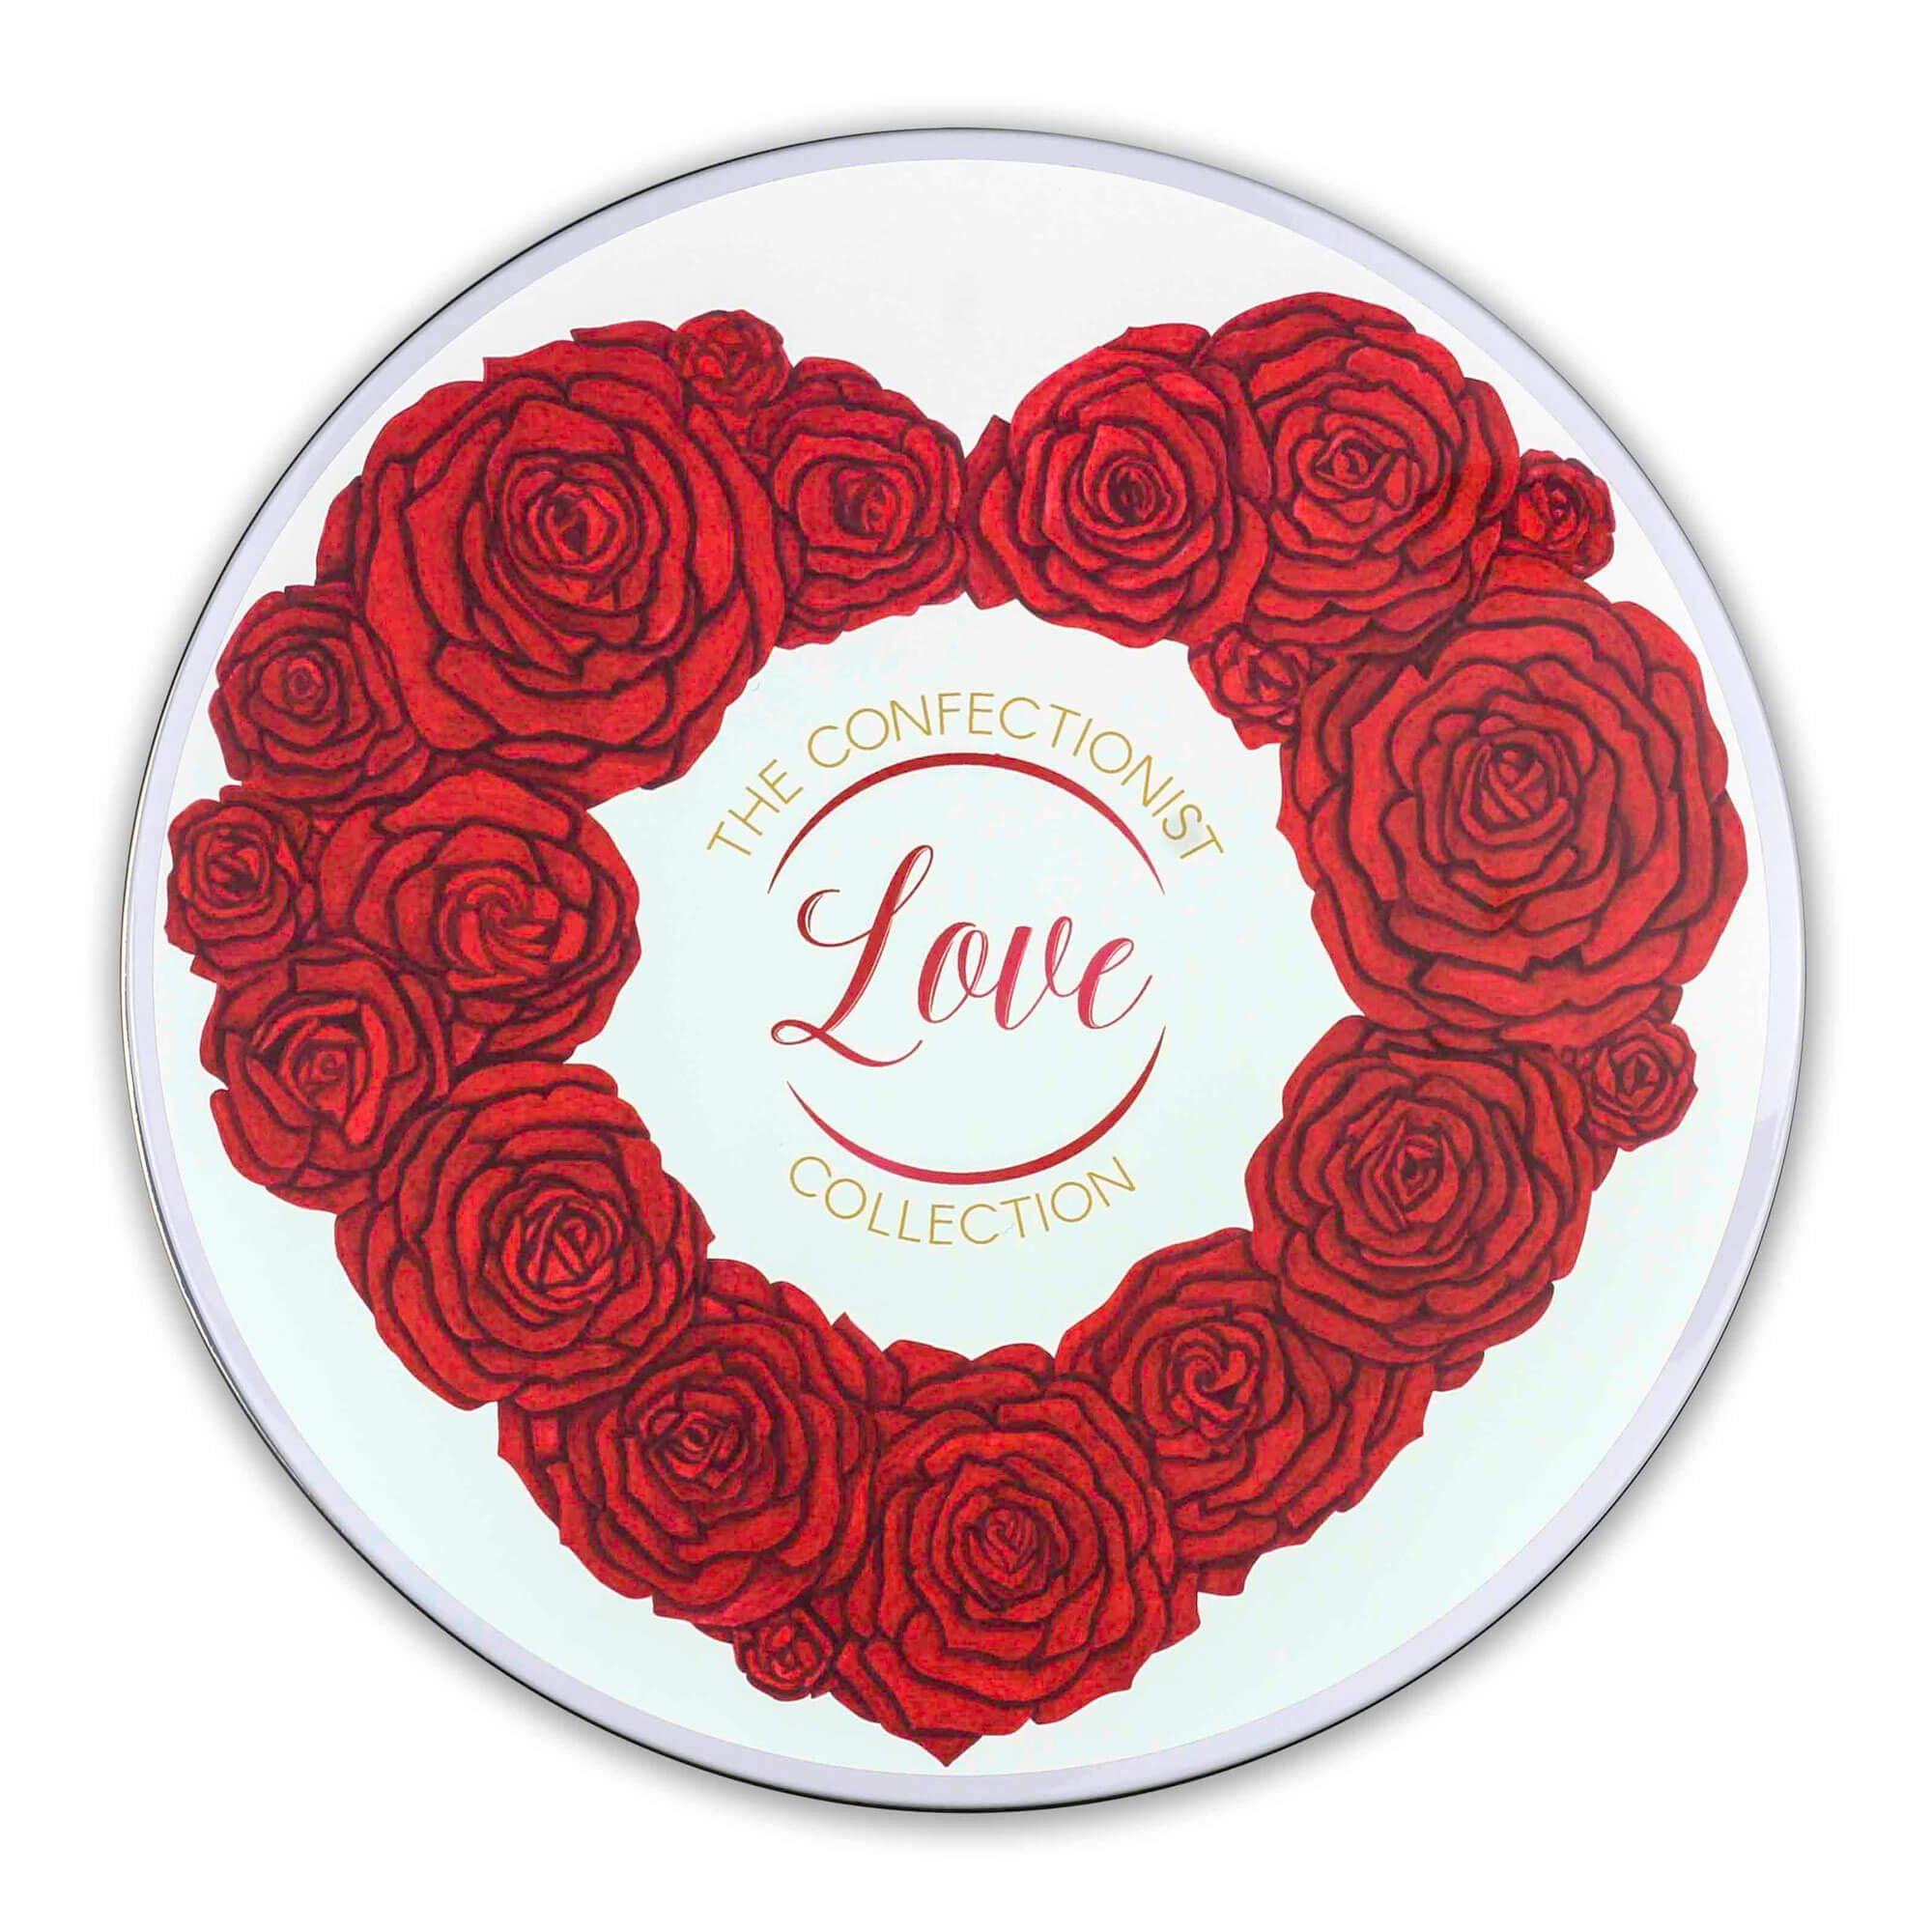 Love Biscuit Collection Tin Lid